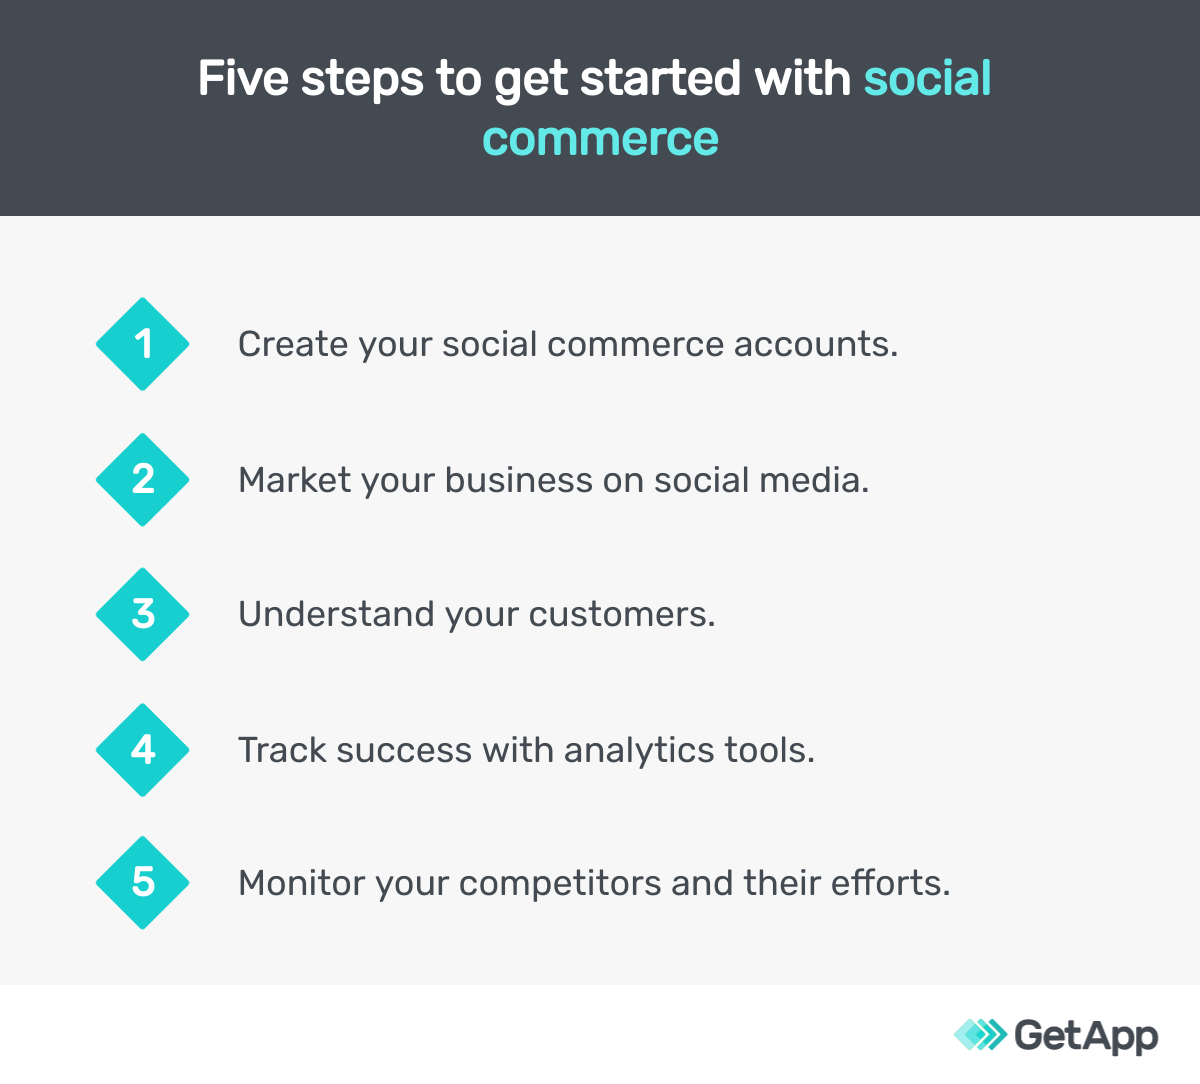 Five Steps To Get Started With Social Commerce